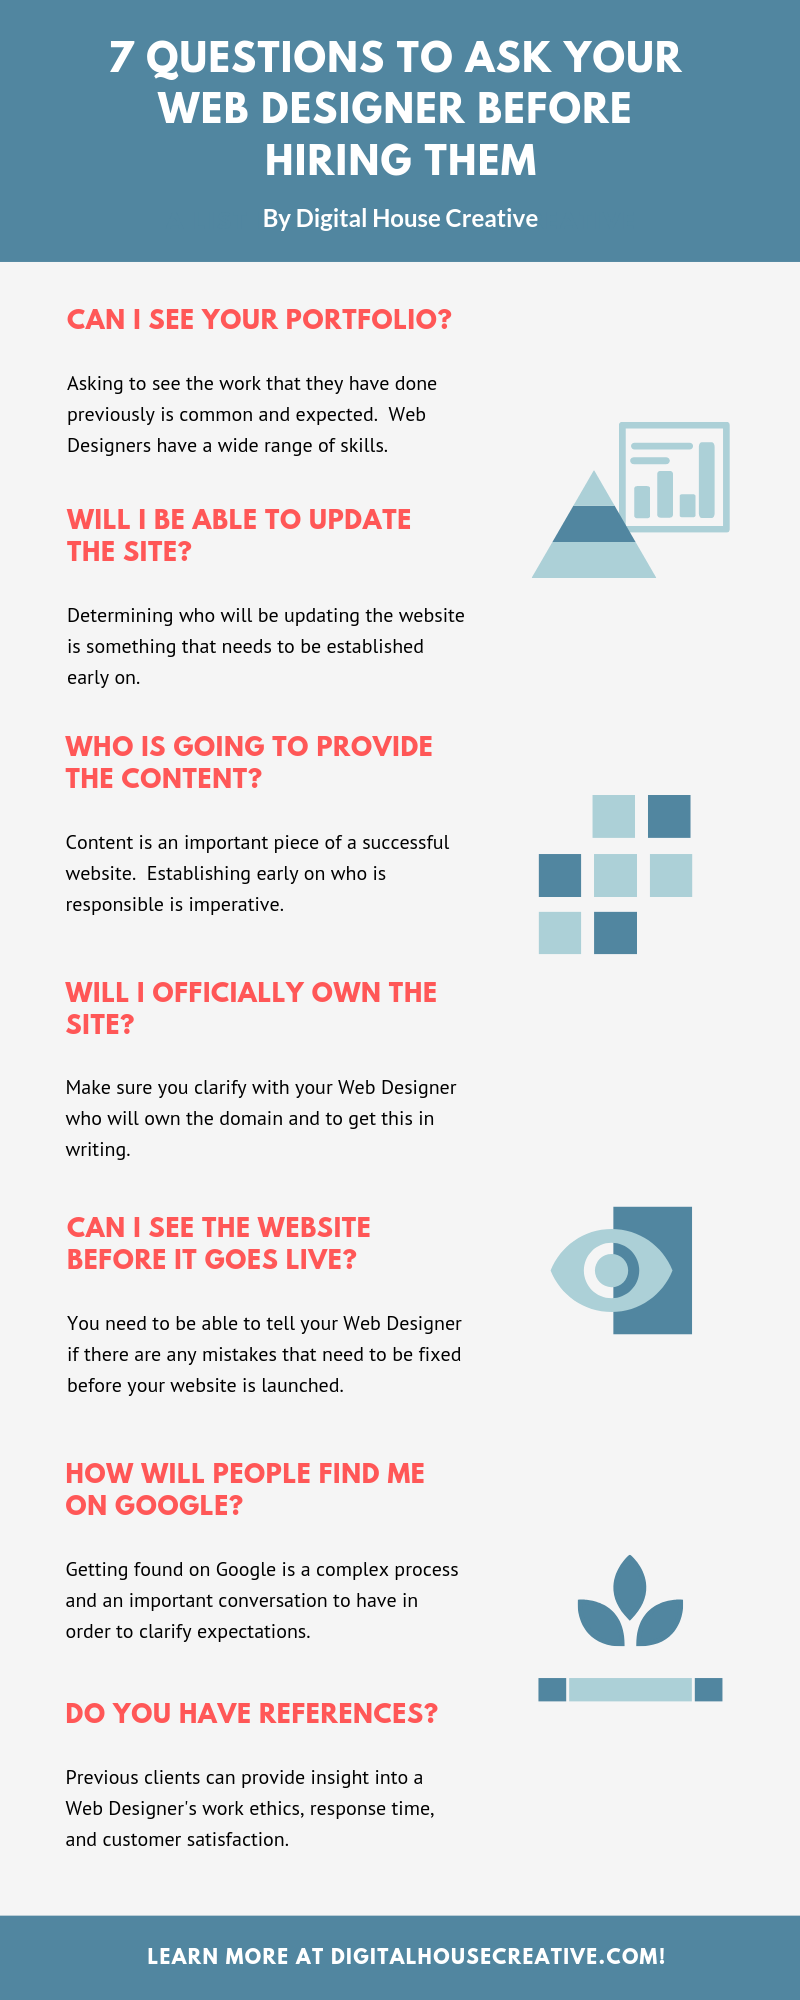 Important questions to ask a Web Designer before hiring them.